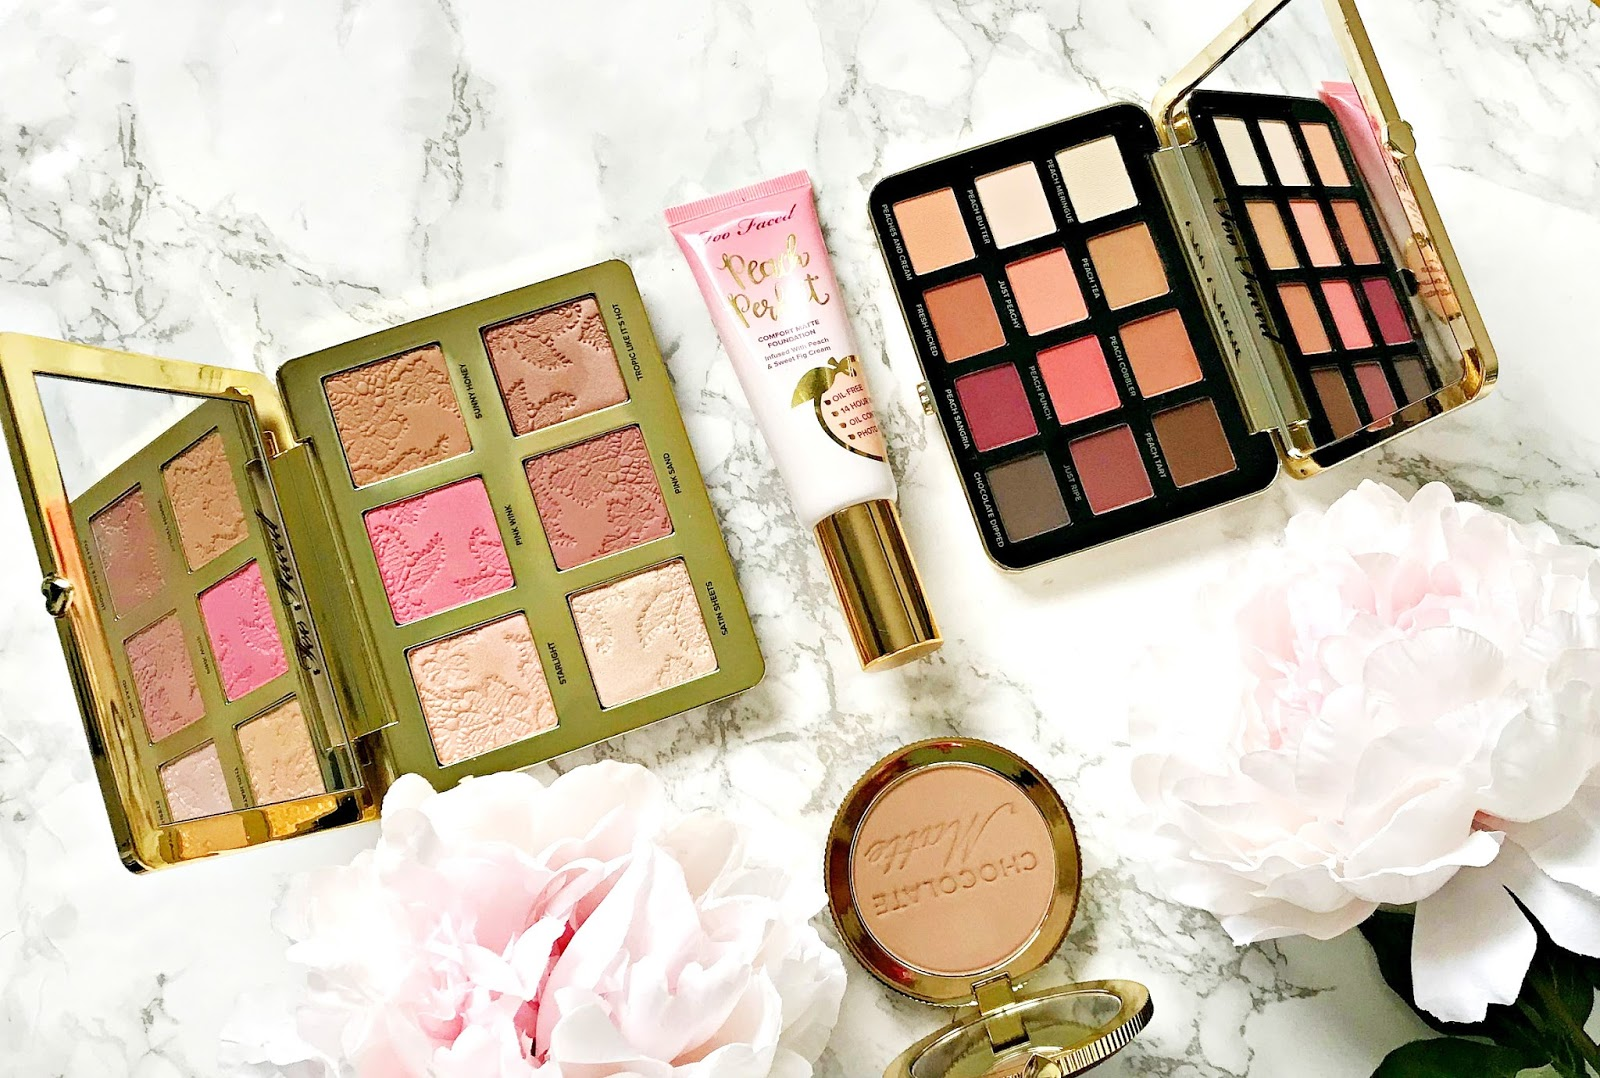 Too Faced, Chocolate Matte Soleil Bronzer, Just Peachy Velvet Matte, Eyeshadow Palette, Natural Face Palette, Peach Perfect Comfort Matte Foundation, Review,